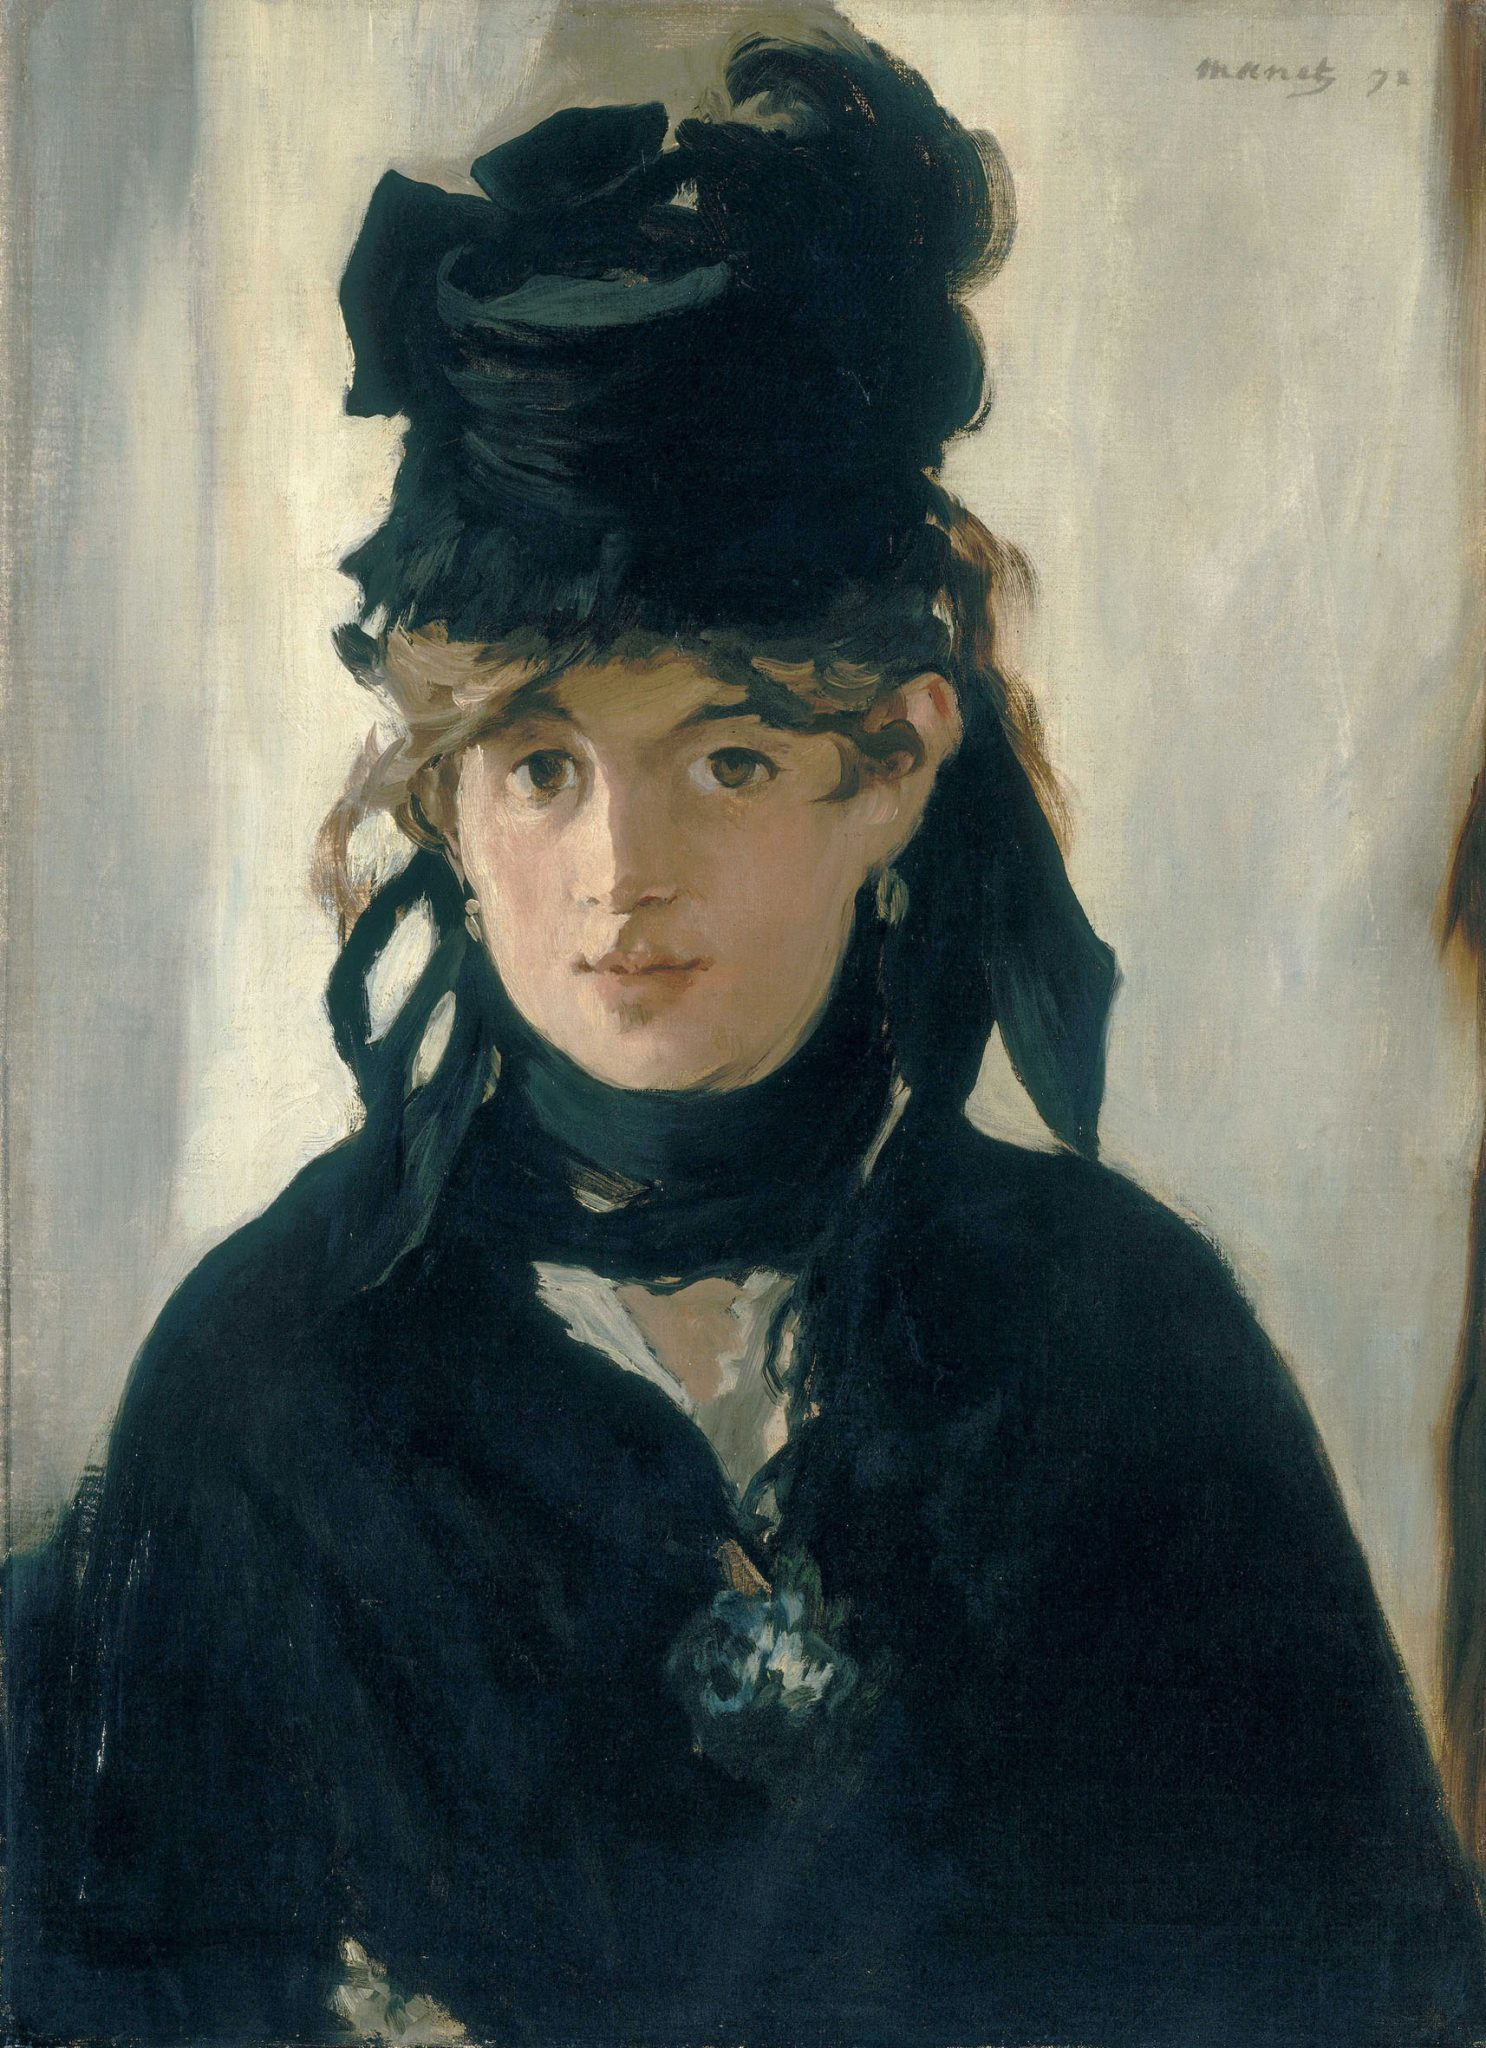 manet 1 Édouard manet (us: or uk: french: [edwaʁ manɛ] 23 january 1832 - 30 april 1883) was a french painter he was one of the first 19th-century artists to paint modern life, and a pivotal figure in the transition from realism to impressionism born into an upper-class household with strong.